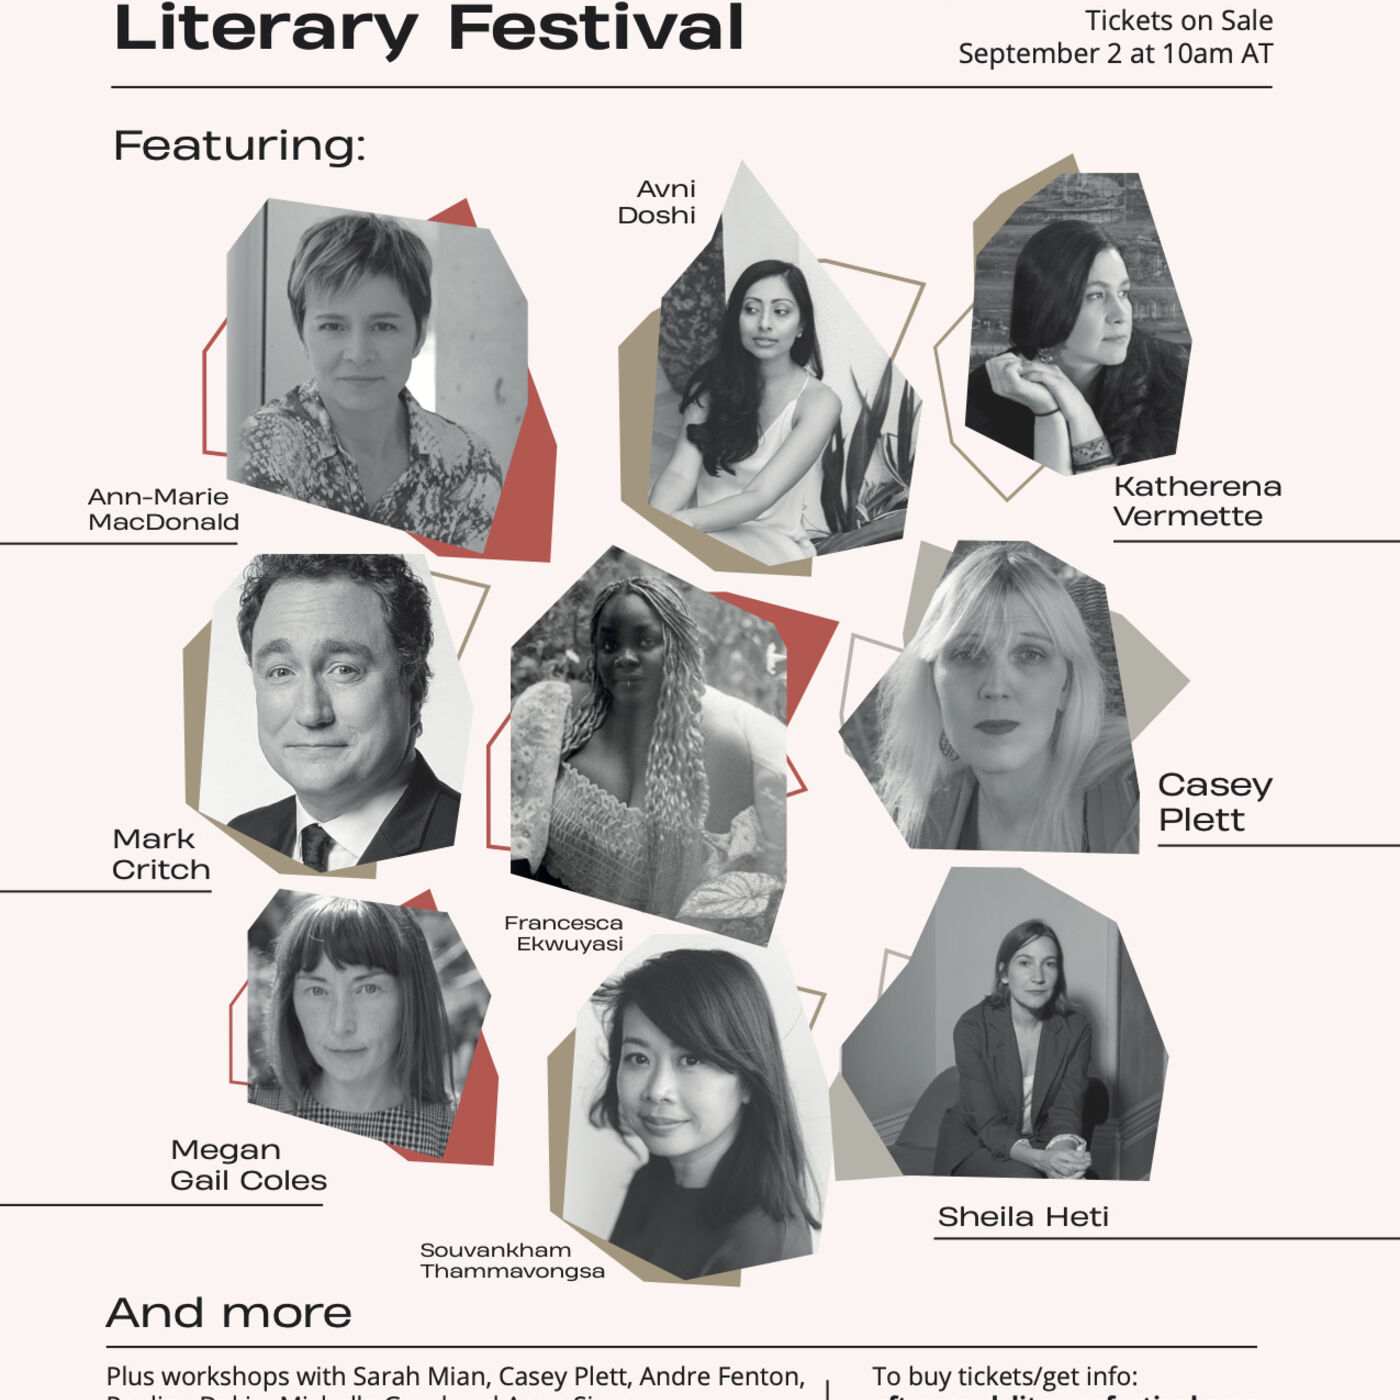 Episode 48:  AfterWords Literary Festival with Stephanie Domet